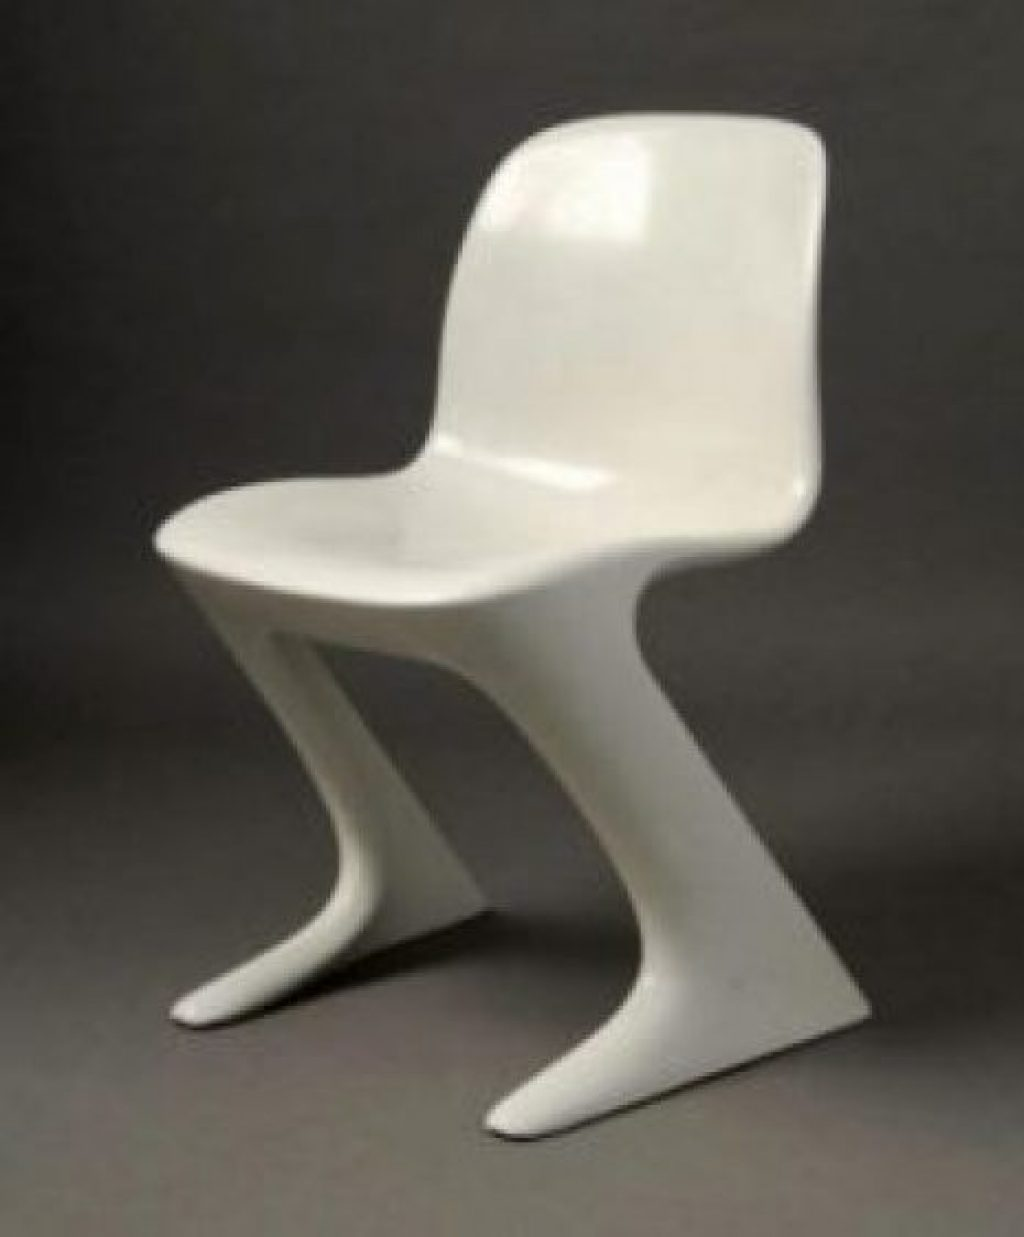 The Kangaroo Chair 1968